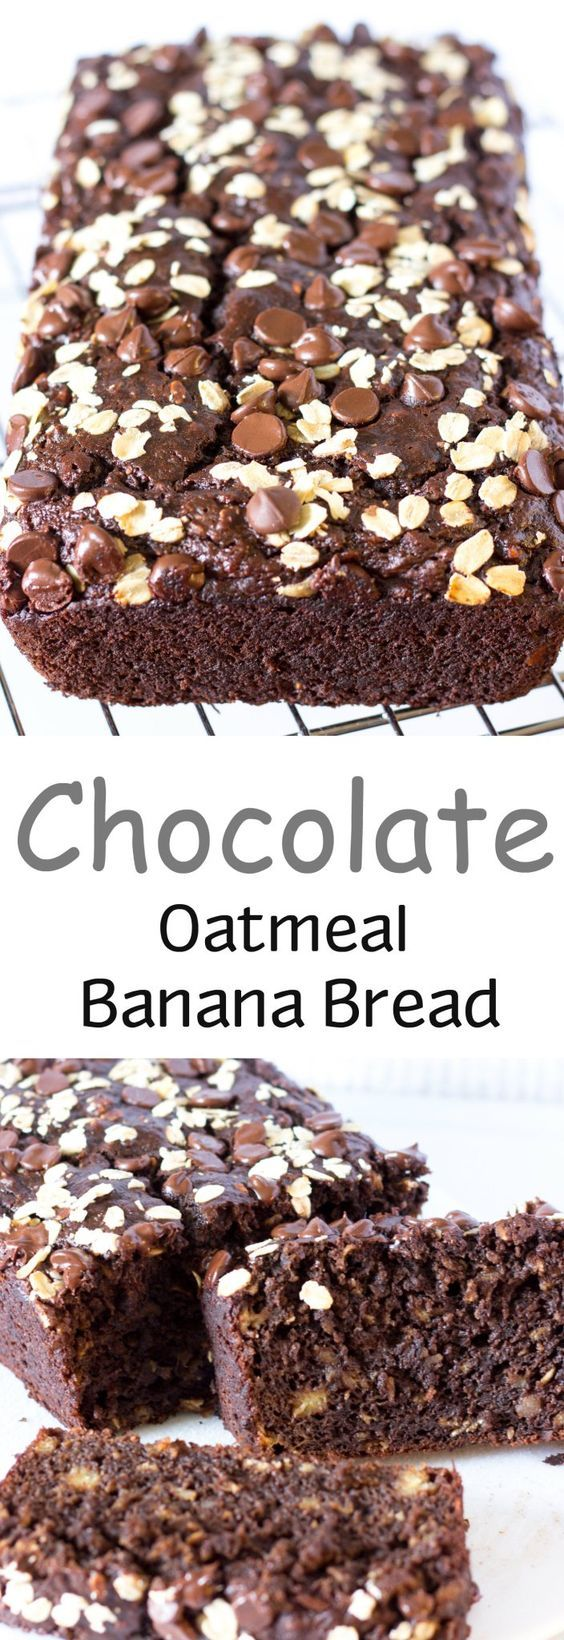 """Chocolate Oatmeal Banana Bread - ahhhmazing!! This was easy to throw together. Didn't have a loaf pan so I used a 9"""" square pan and baked for 35 minutes. Added a smidge of butter on top because that's how I roll. This was really good - will definitely be making this version of banana bread again!! (will try adding flax seed and partial whole wheat flour)"""